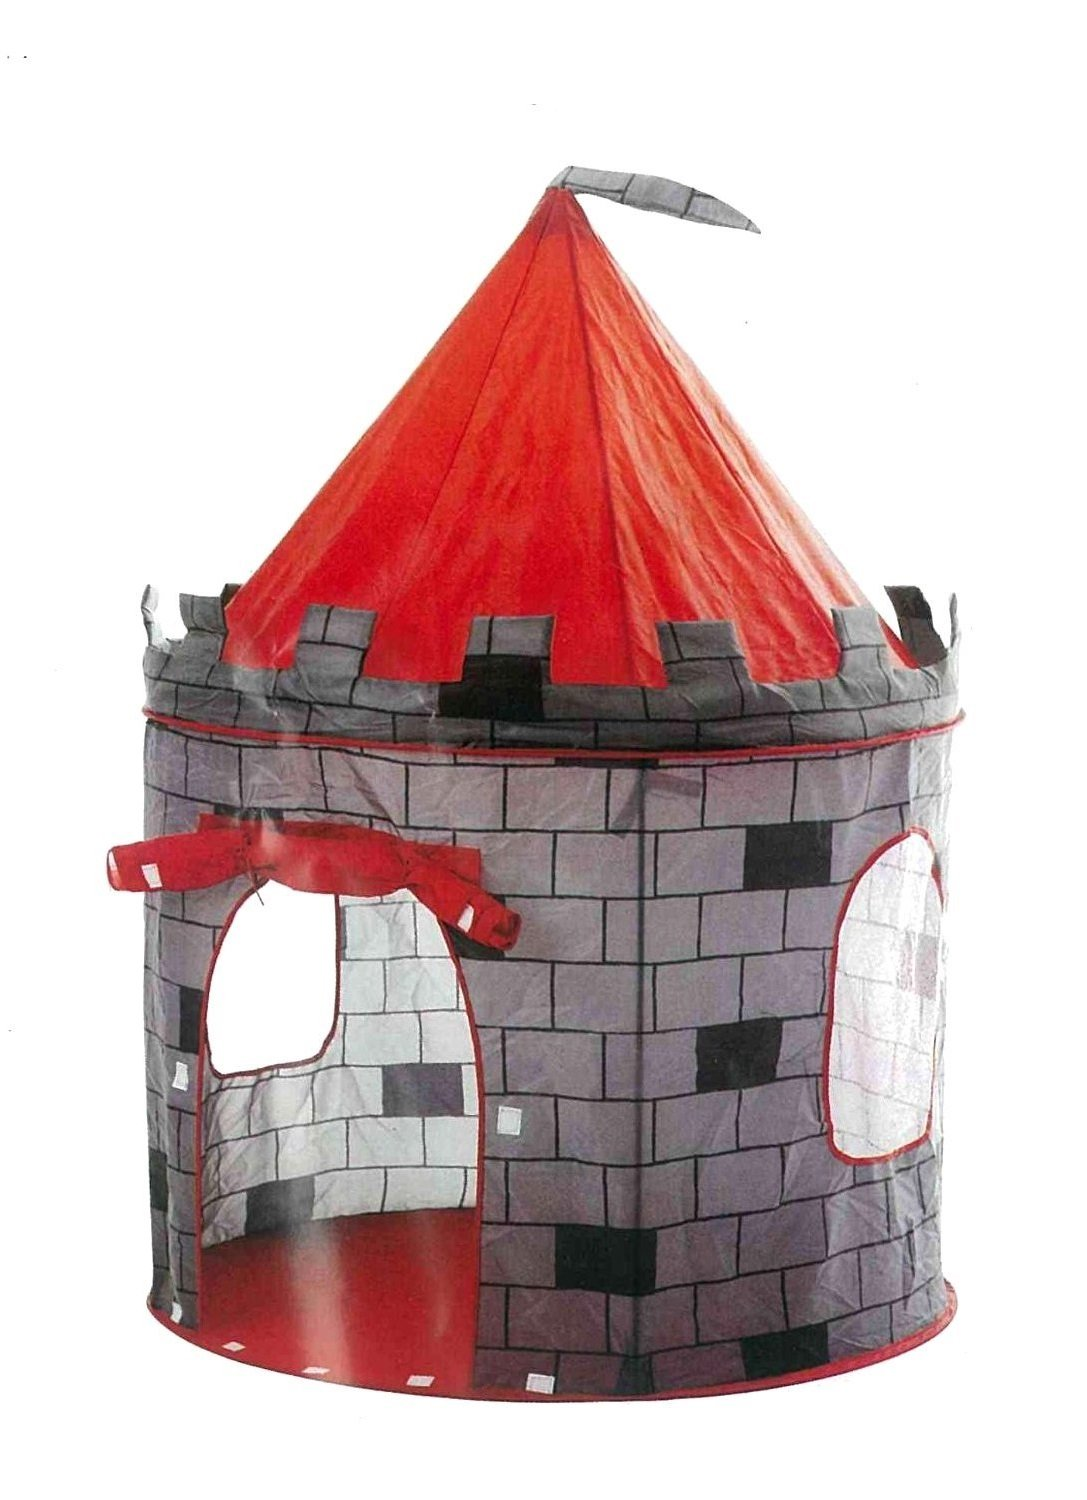 sc 1 st  Amazon.com & Amazon.com: Knightu0027s Playhouse - Castle Play Tent - Pockos: Toys u0026 Games